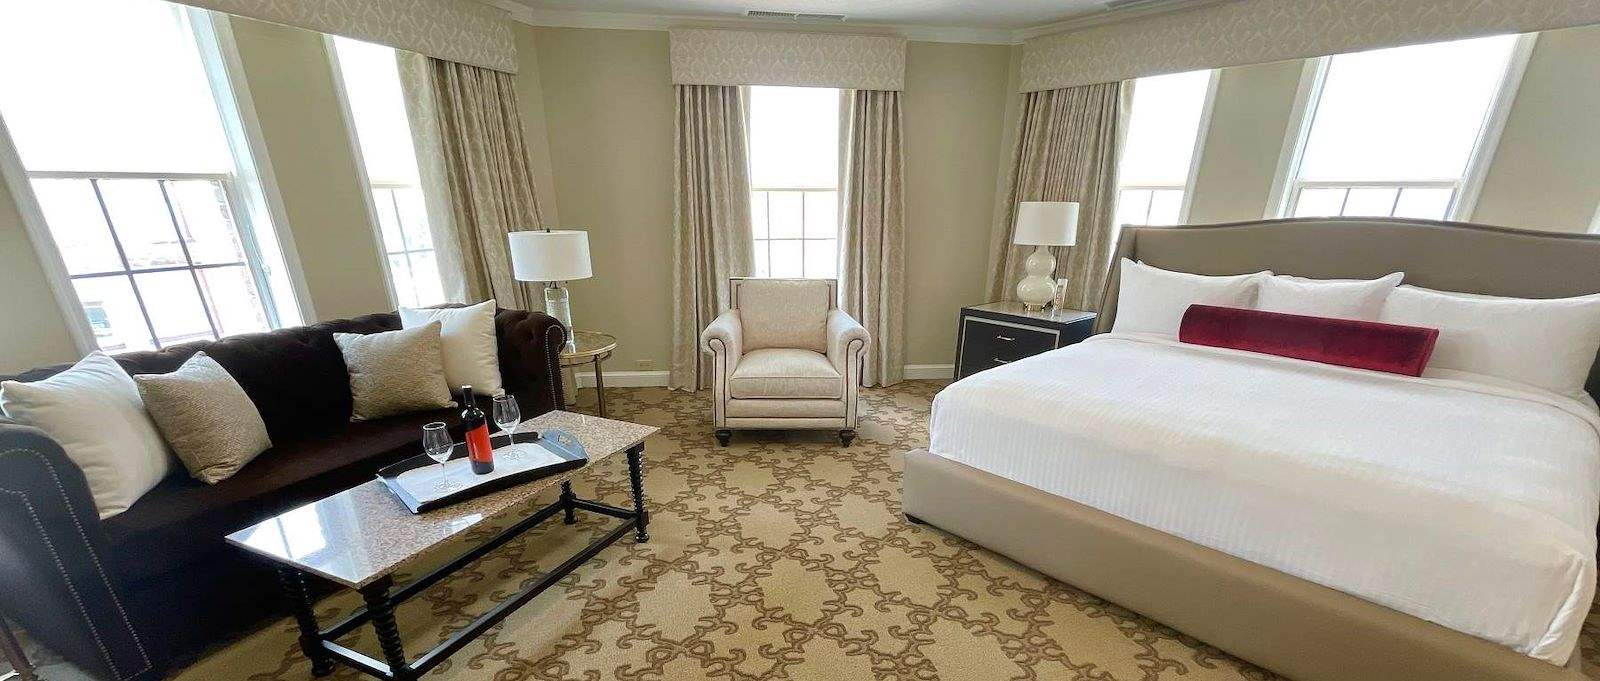 The Henley Park Hotel Rooms